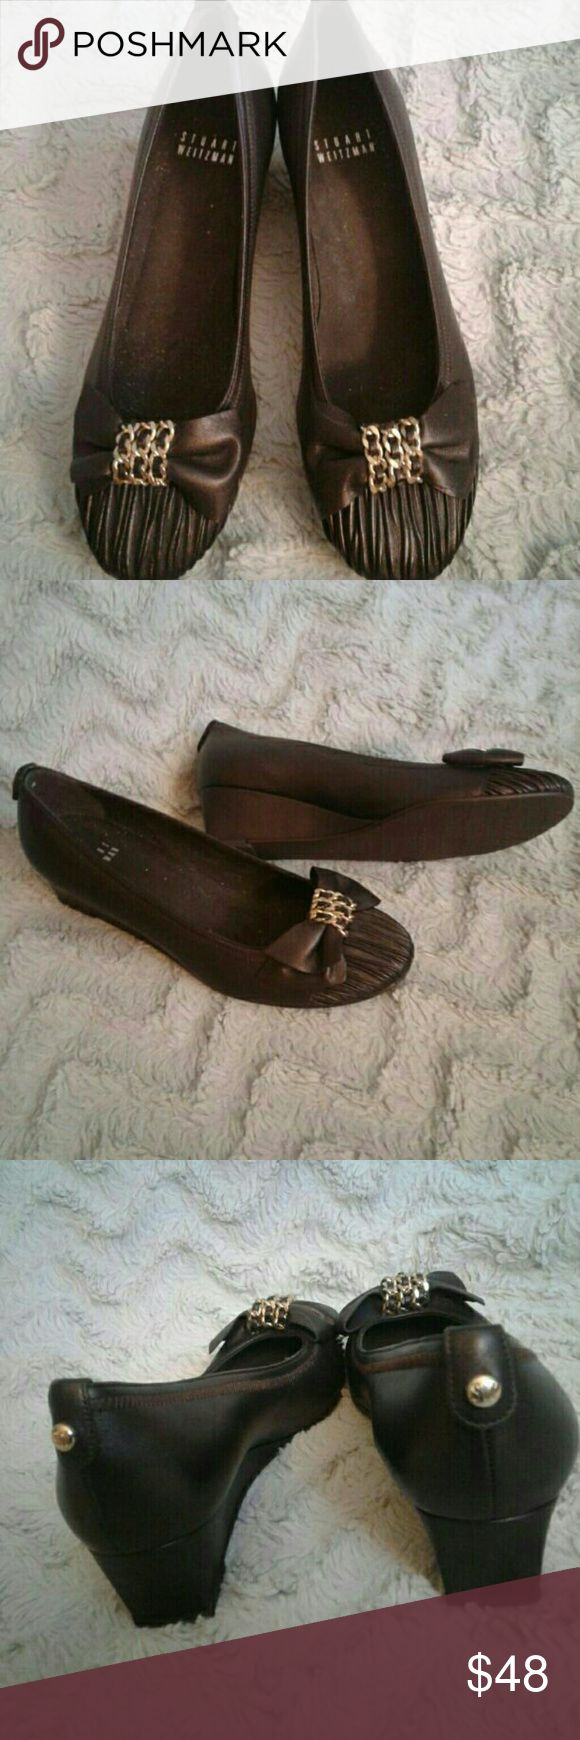 Stuart Weitzman Brown Bow Wedge Heels Women's brown bow gold detail wedge heels. Have been Gently worn, with minor small scuffing in places, soles are in really nice shape.  Size 6 Shoes Footwear Career Professional Shoes Wedges